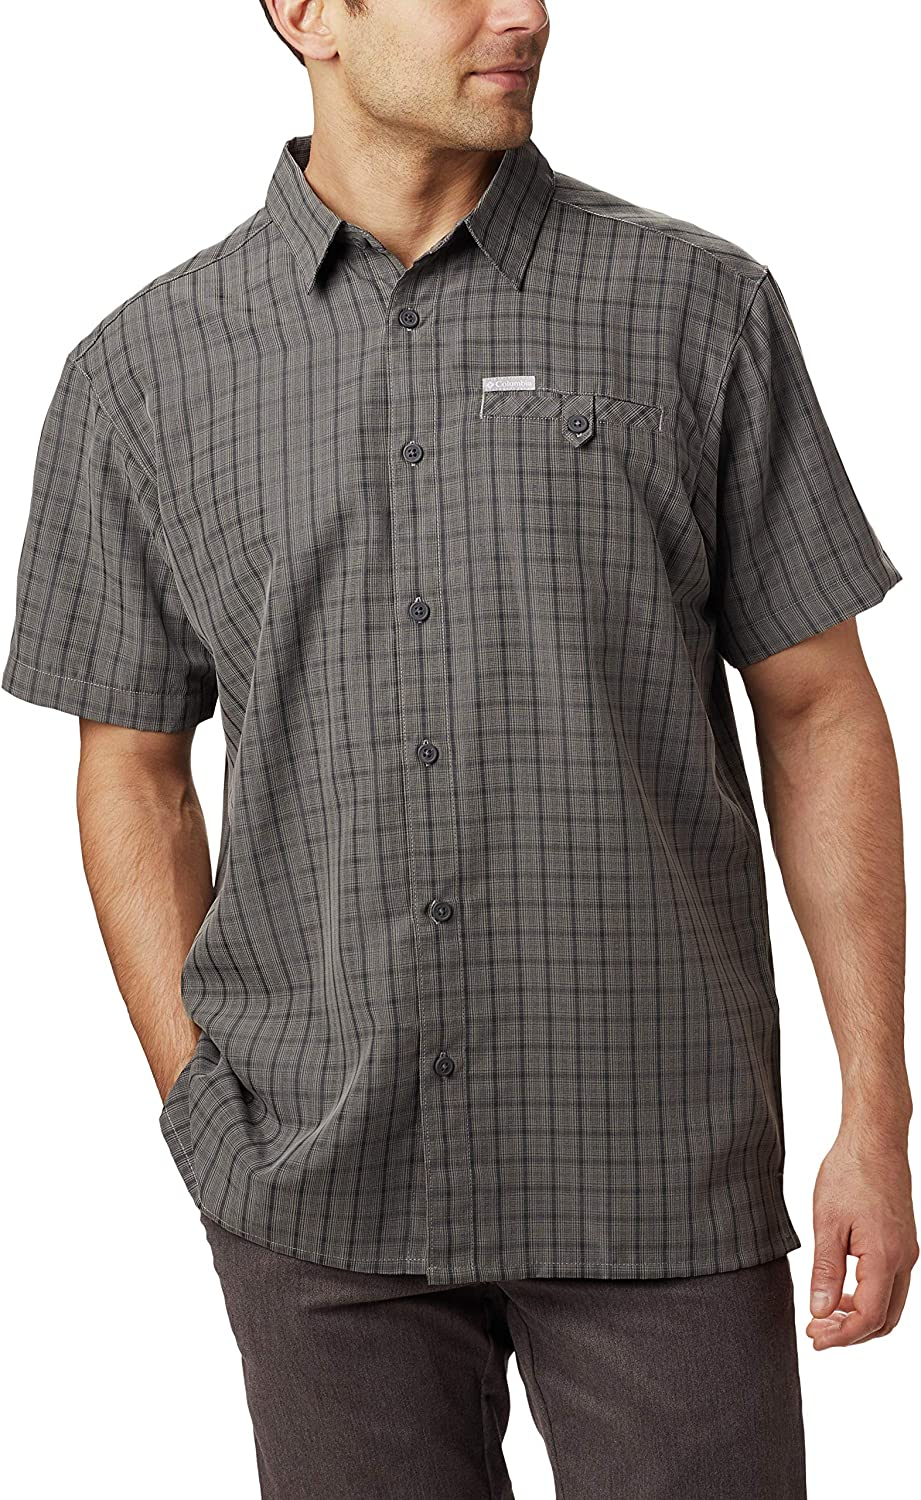 Columbia Men's Declination 67% OFF of fixed price Trail II Short Sleeve Super beauty product restock quality top Prote Shirt UV